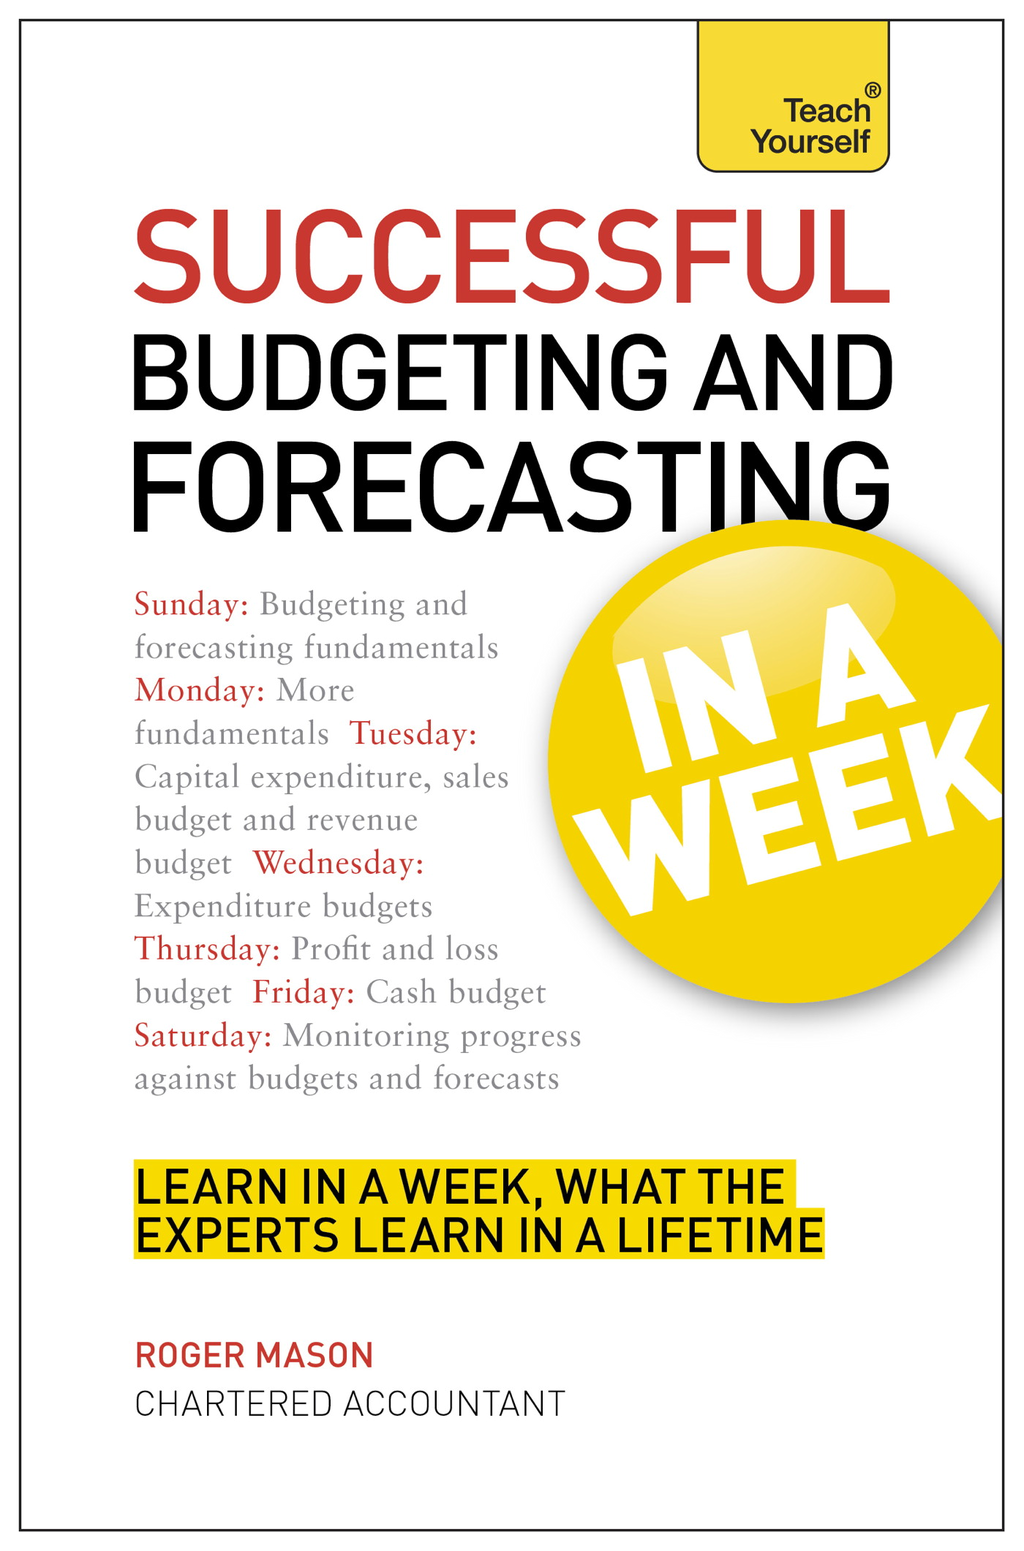 Successful Budgeting and Forecasting in a Week